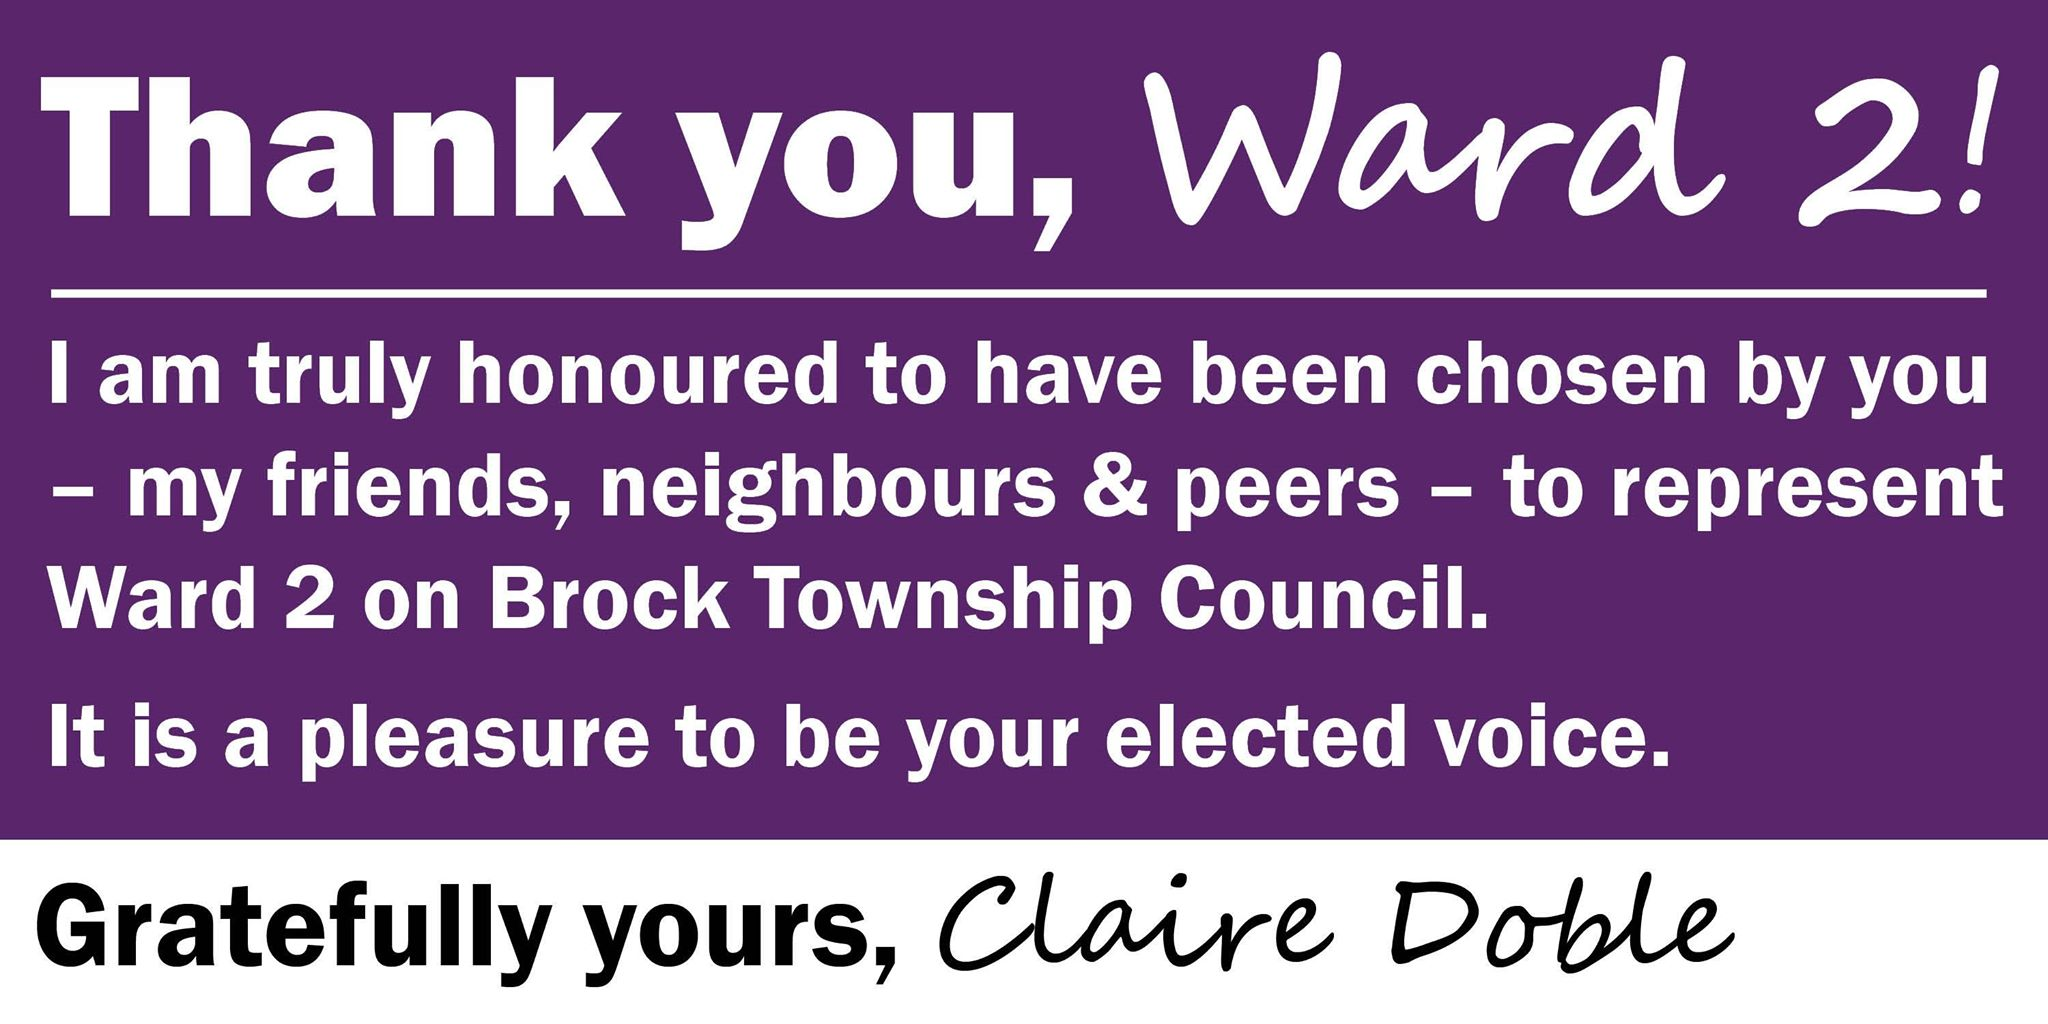 Claire Doble - Thank You Ad